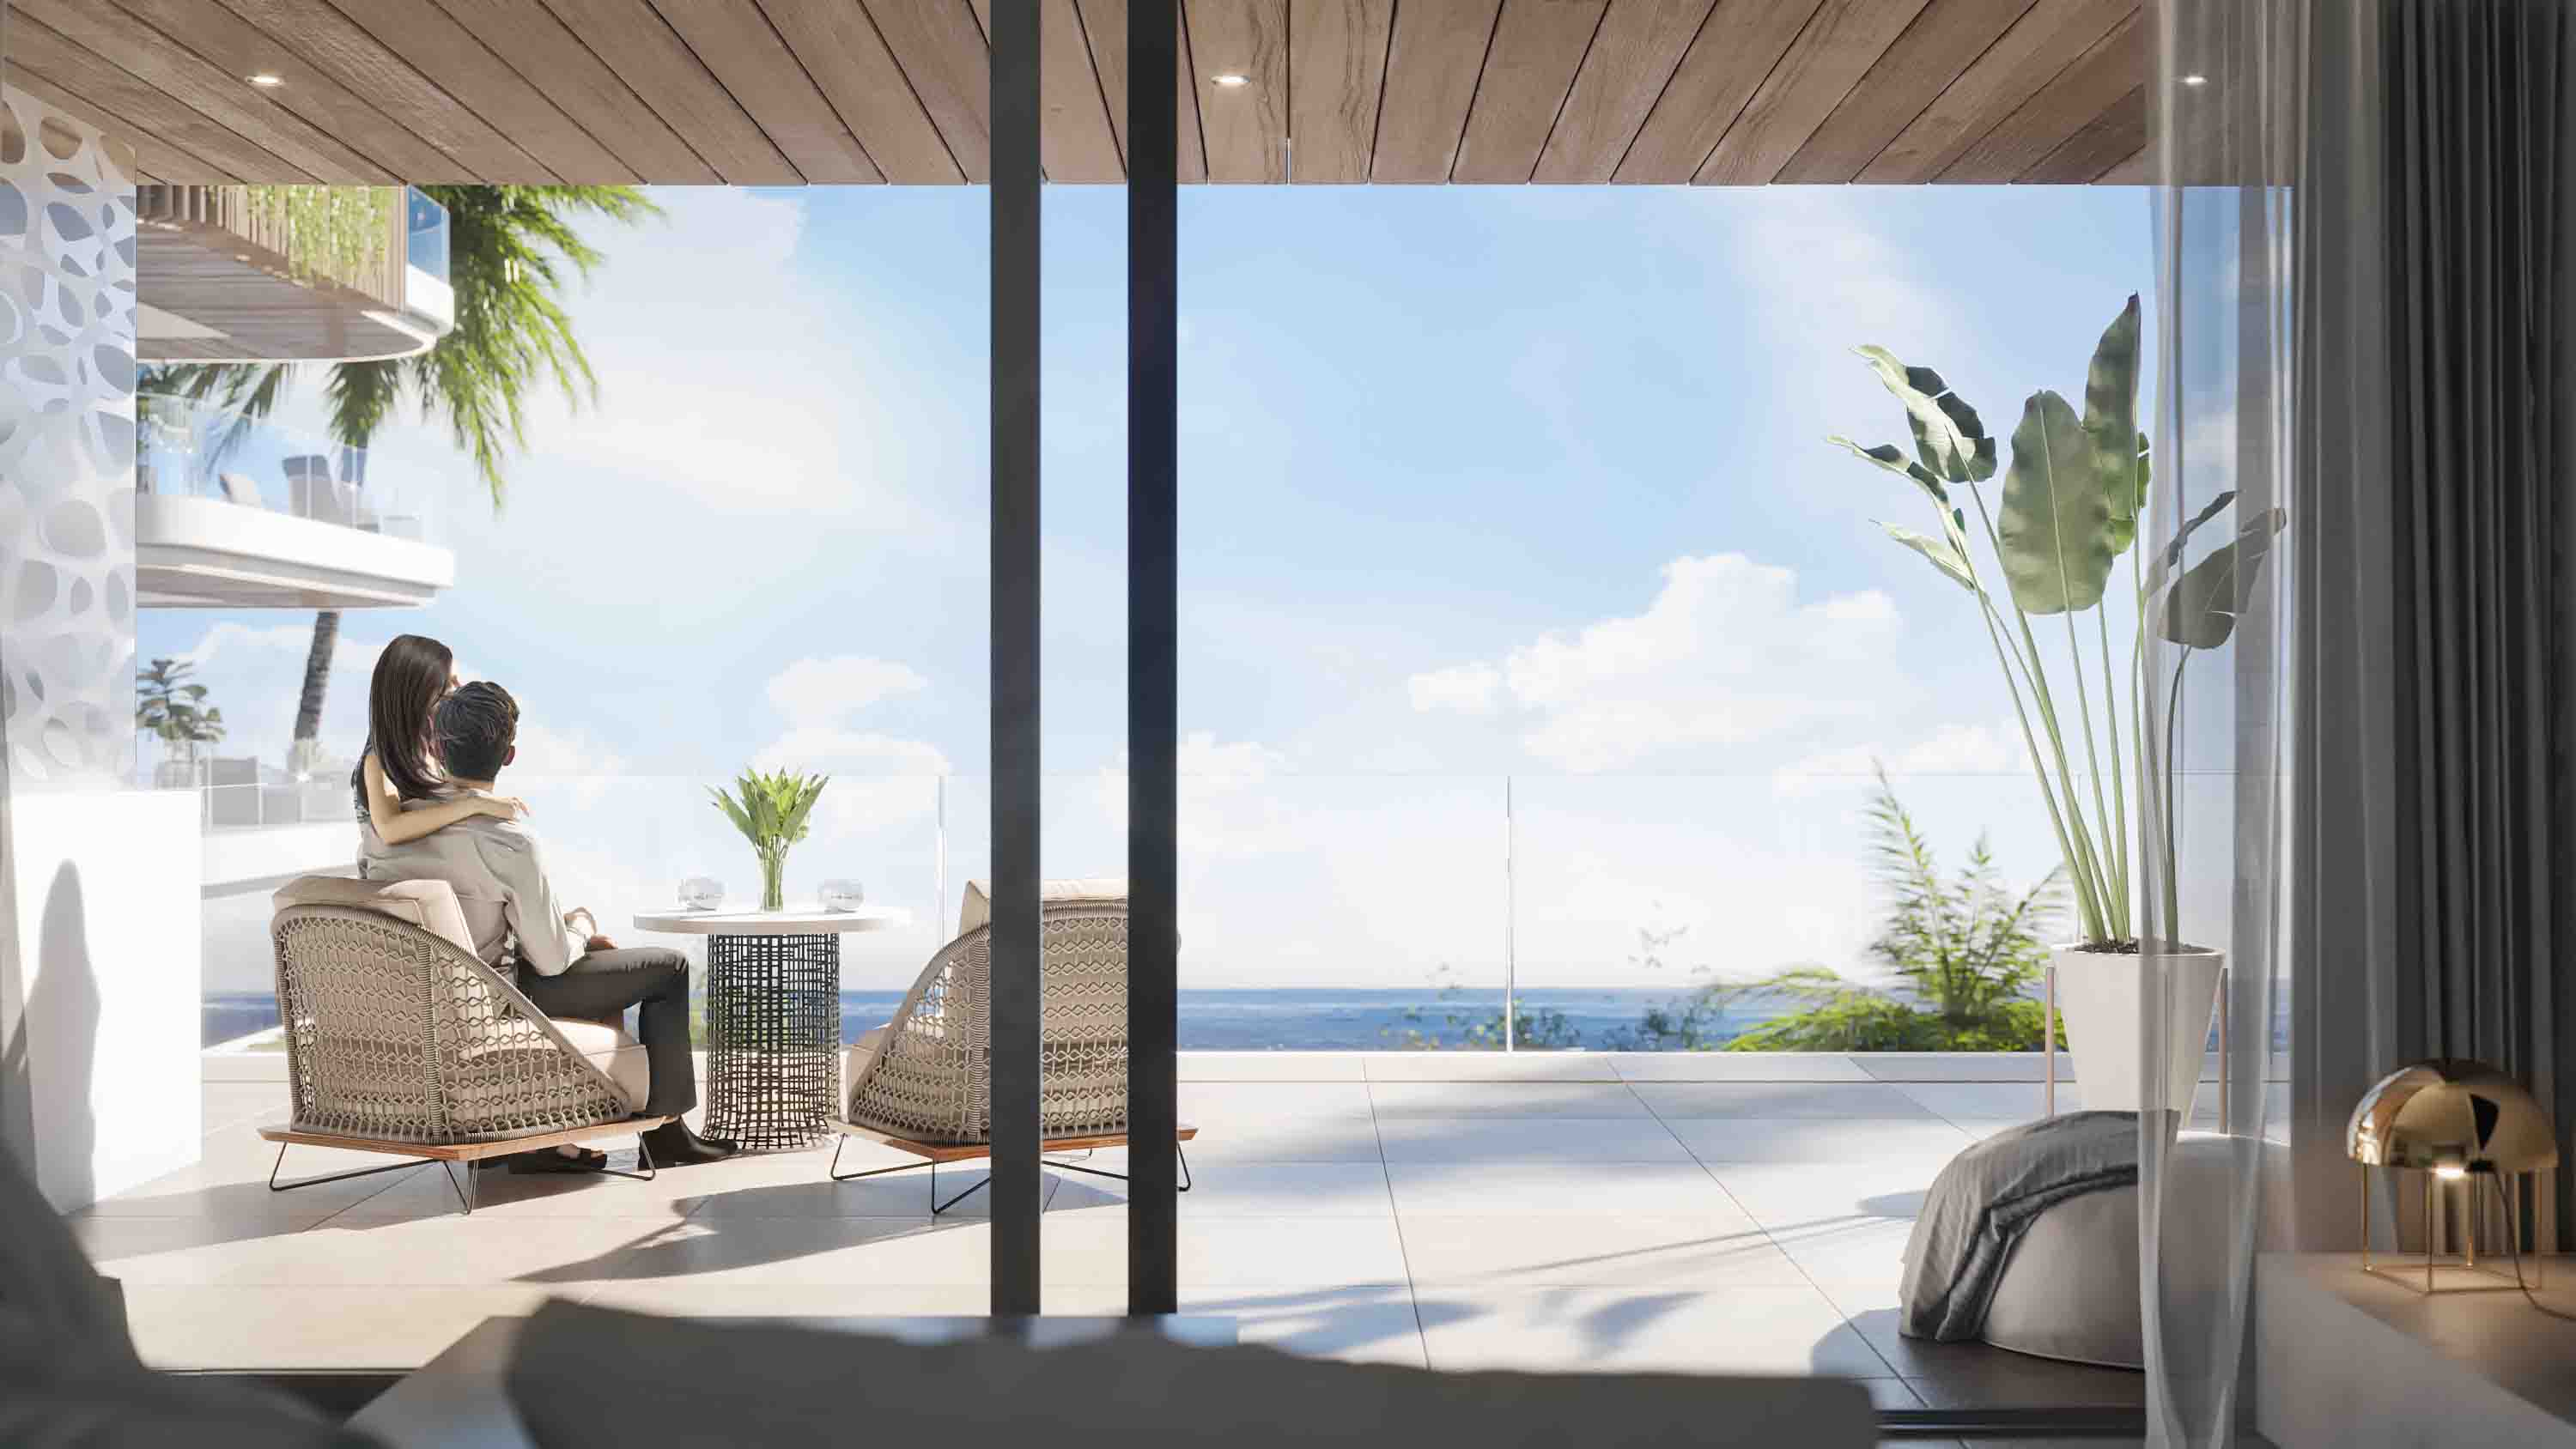 Apartment,For Sale,1157